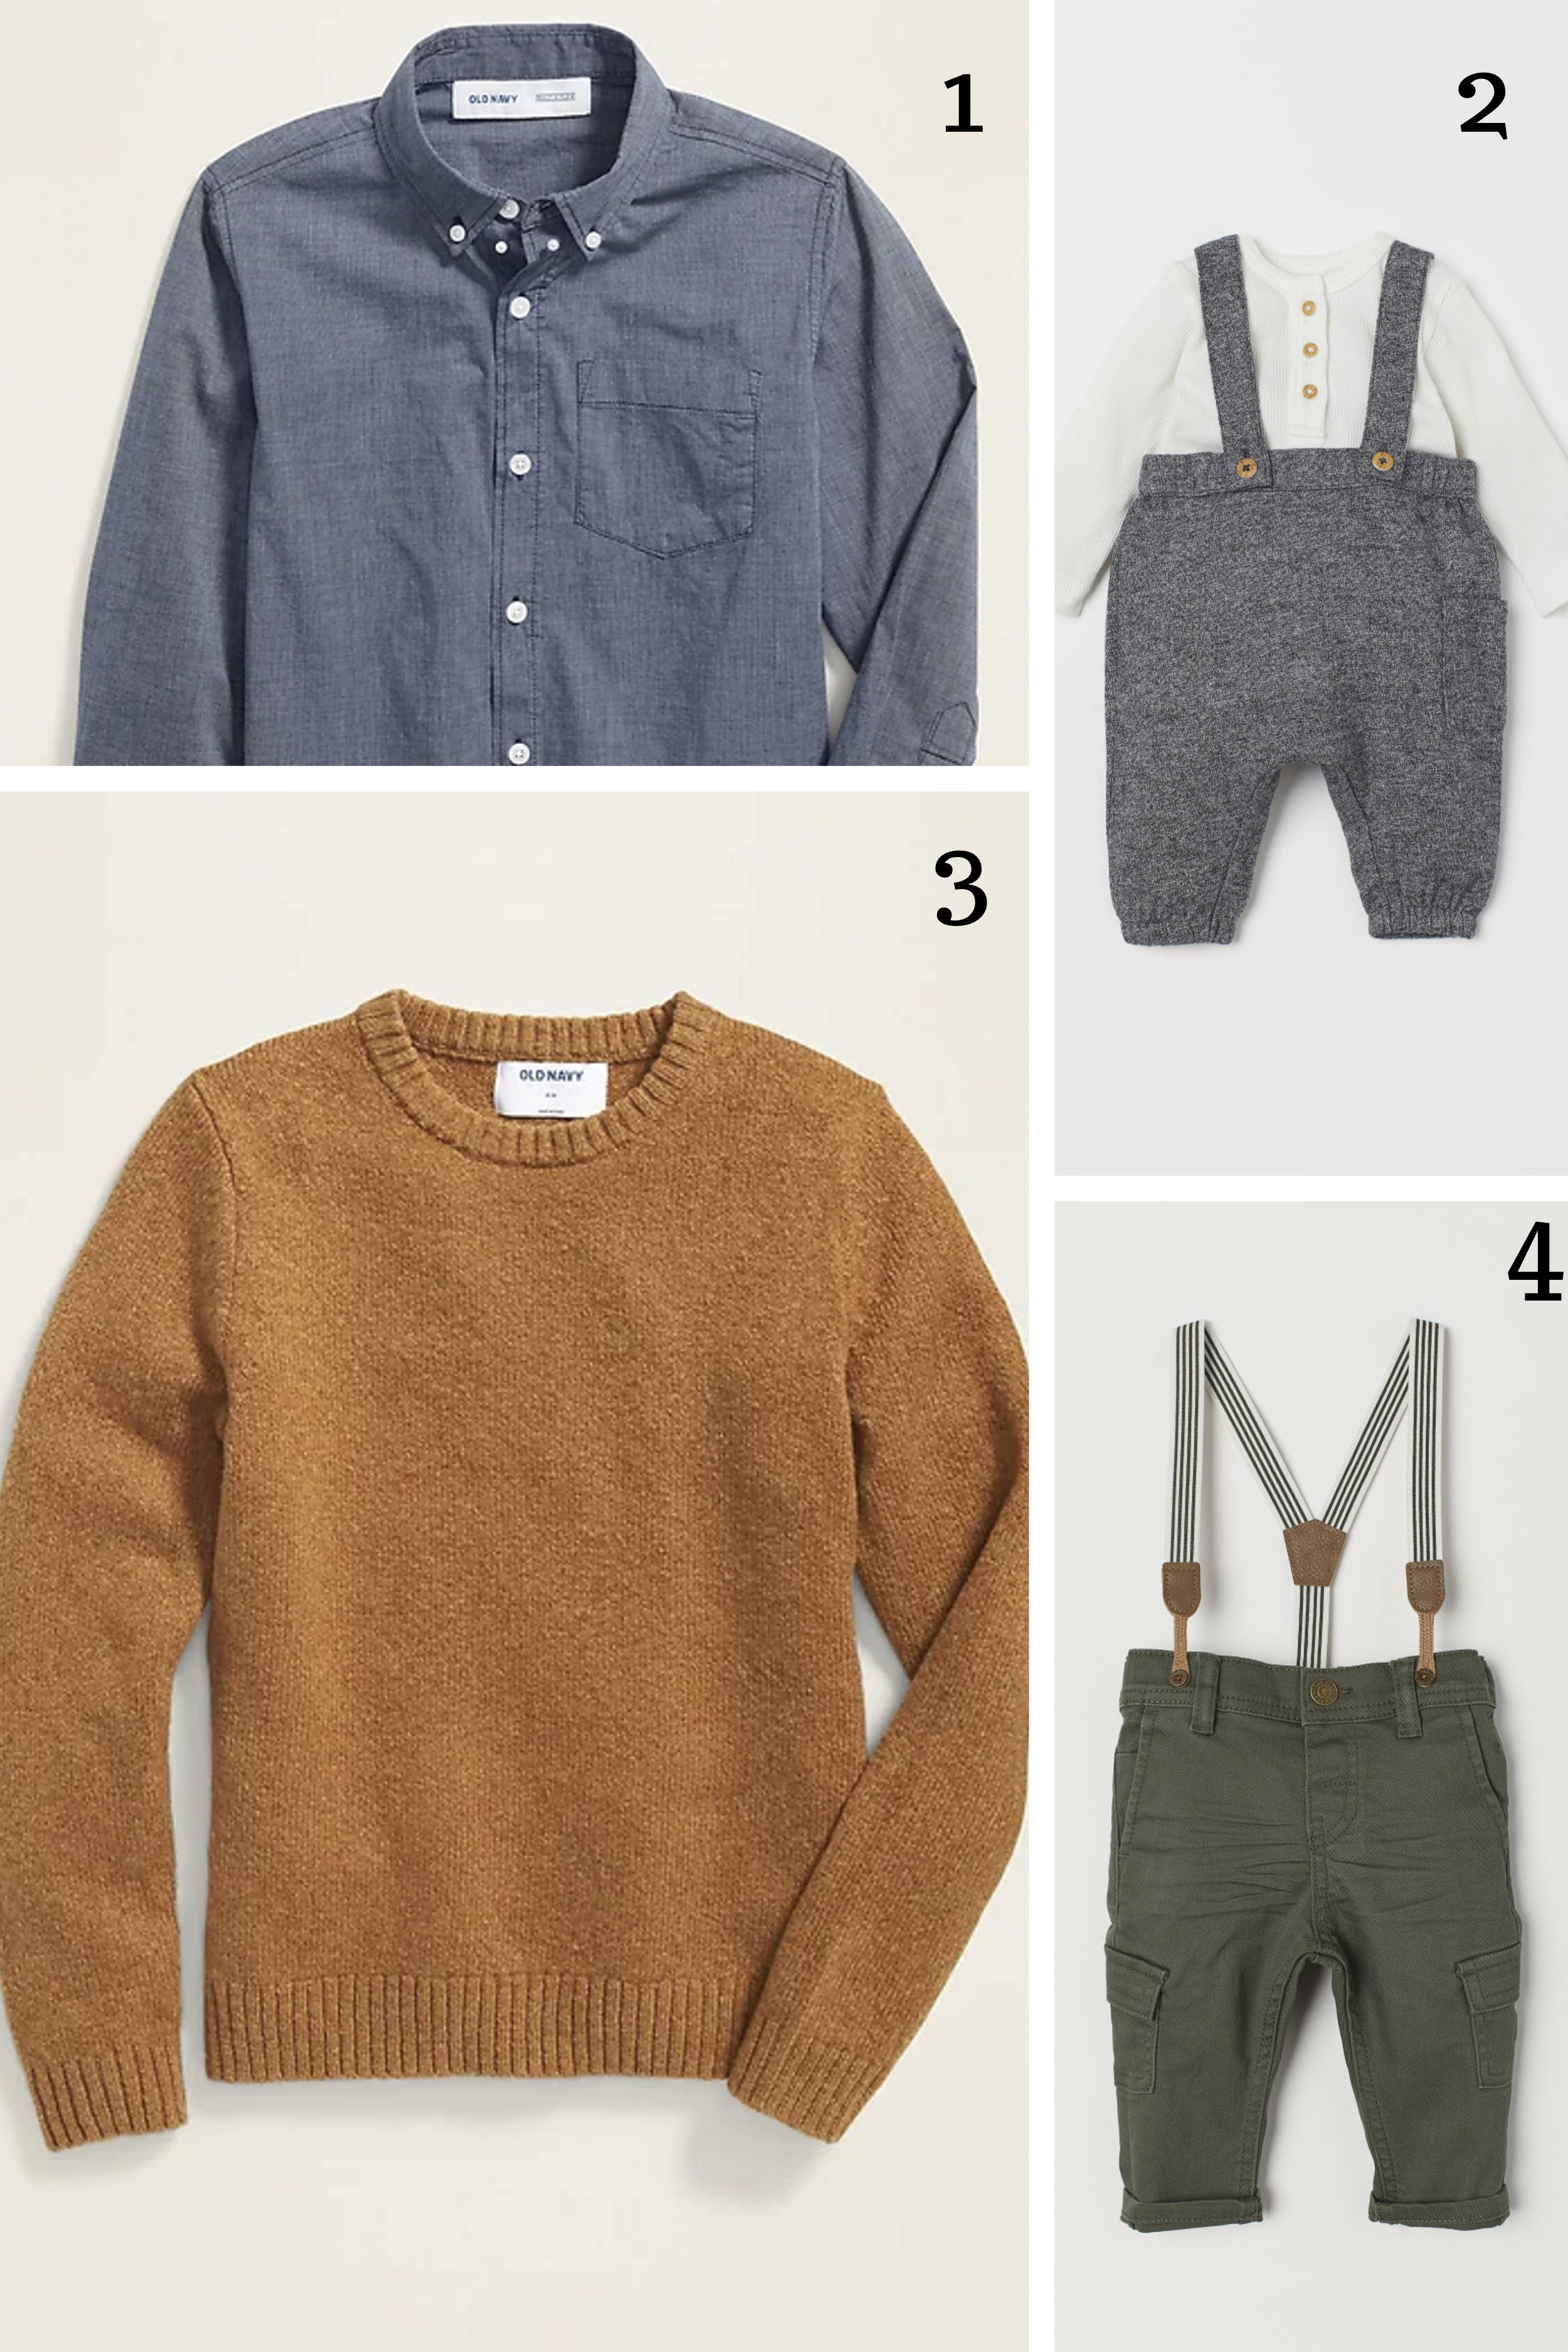 1.  Chambray button up  || 2.  Shirt and overalls  || 3.  Crew neck sweater  || 4.  Twill pants with suspenders